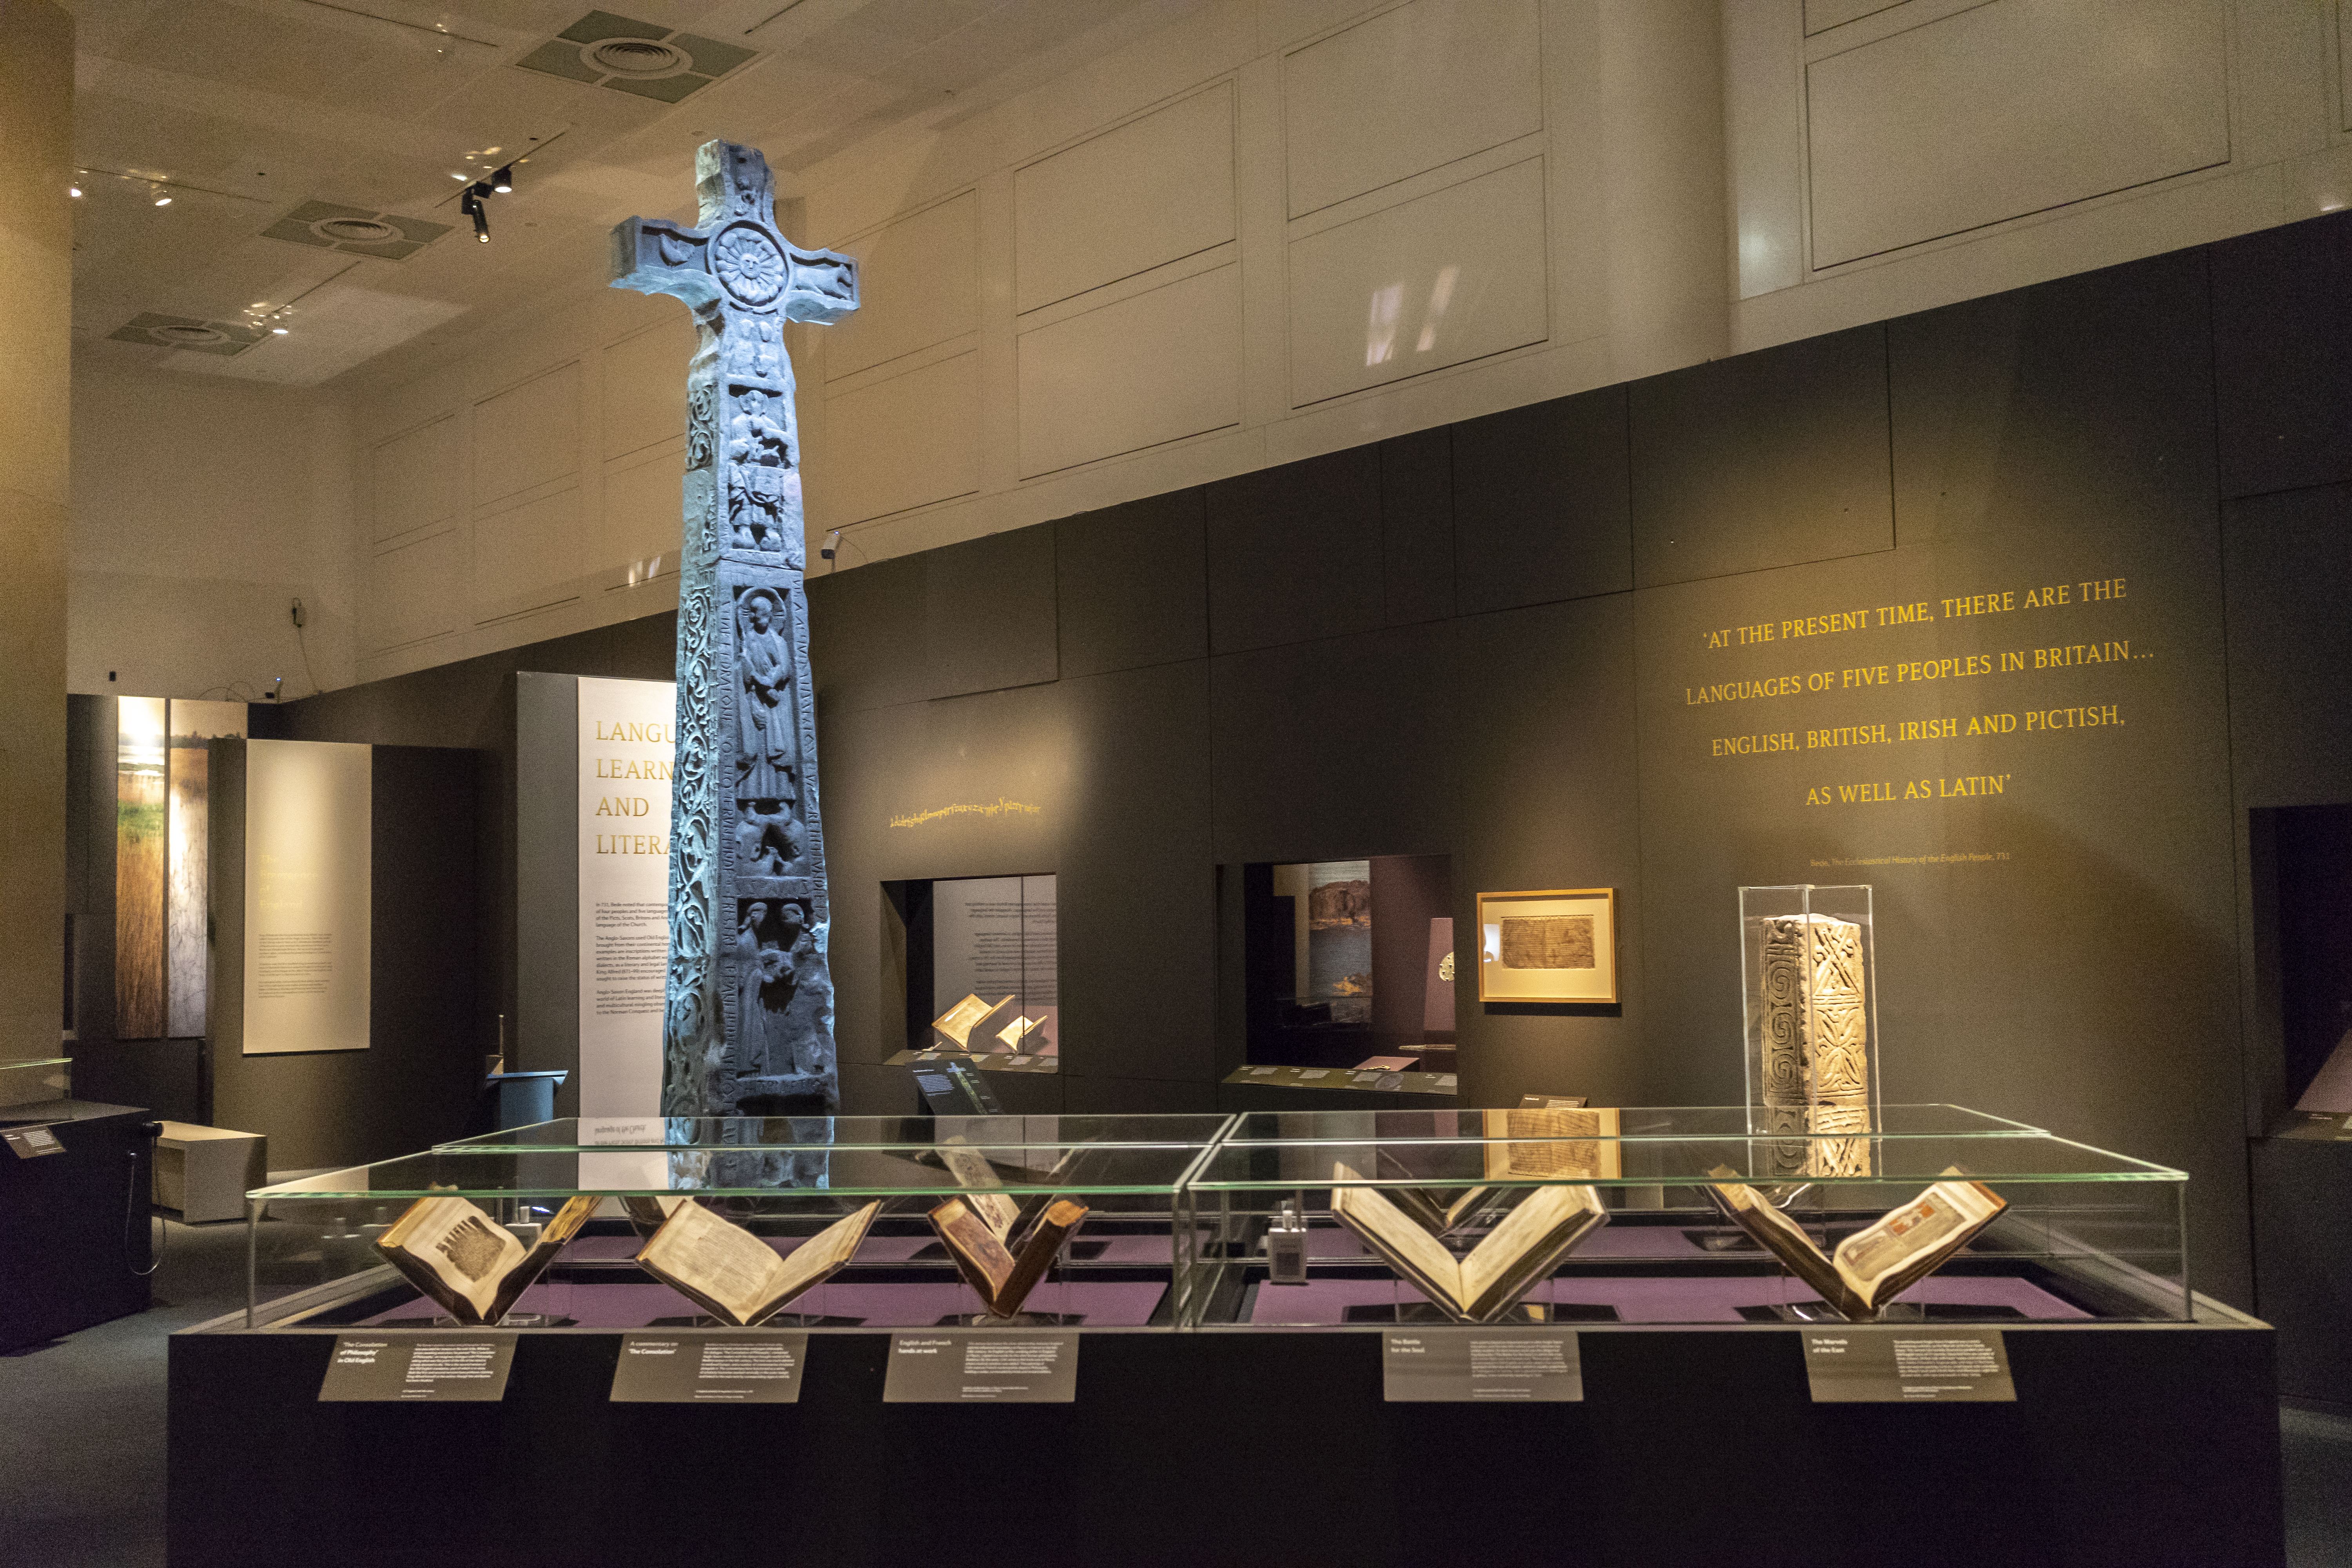 Anglo-Saxon Kingdoms exhibition photo Tony Antoniou